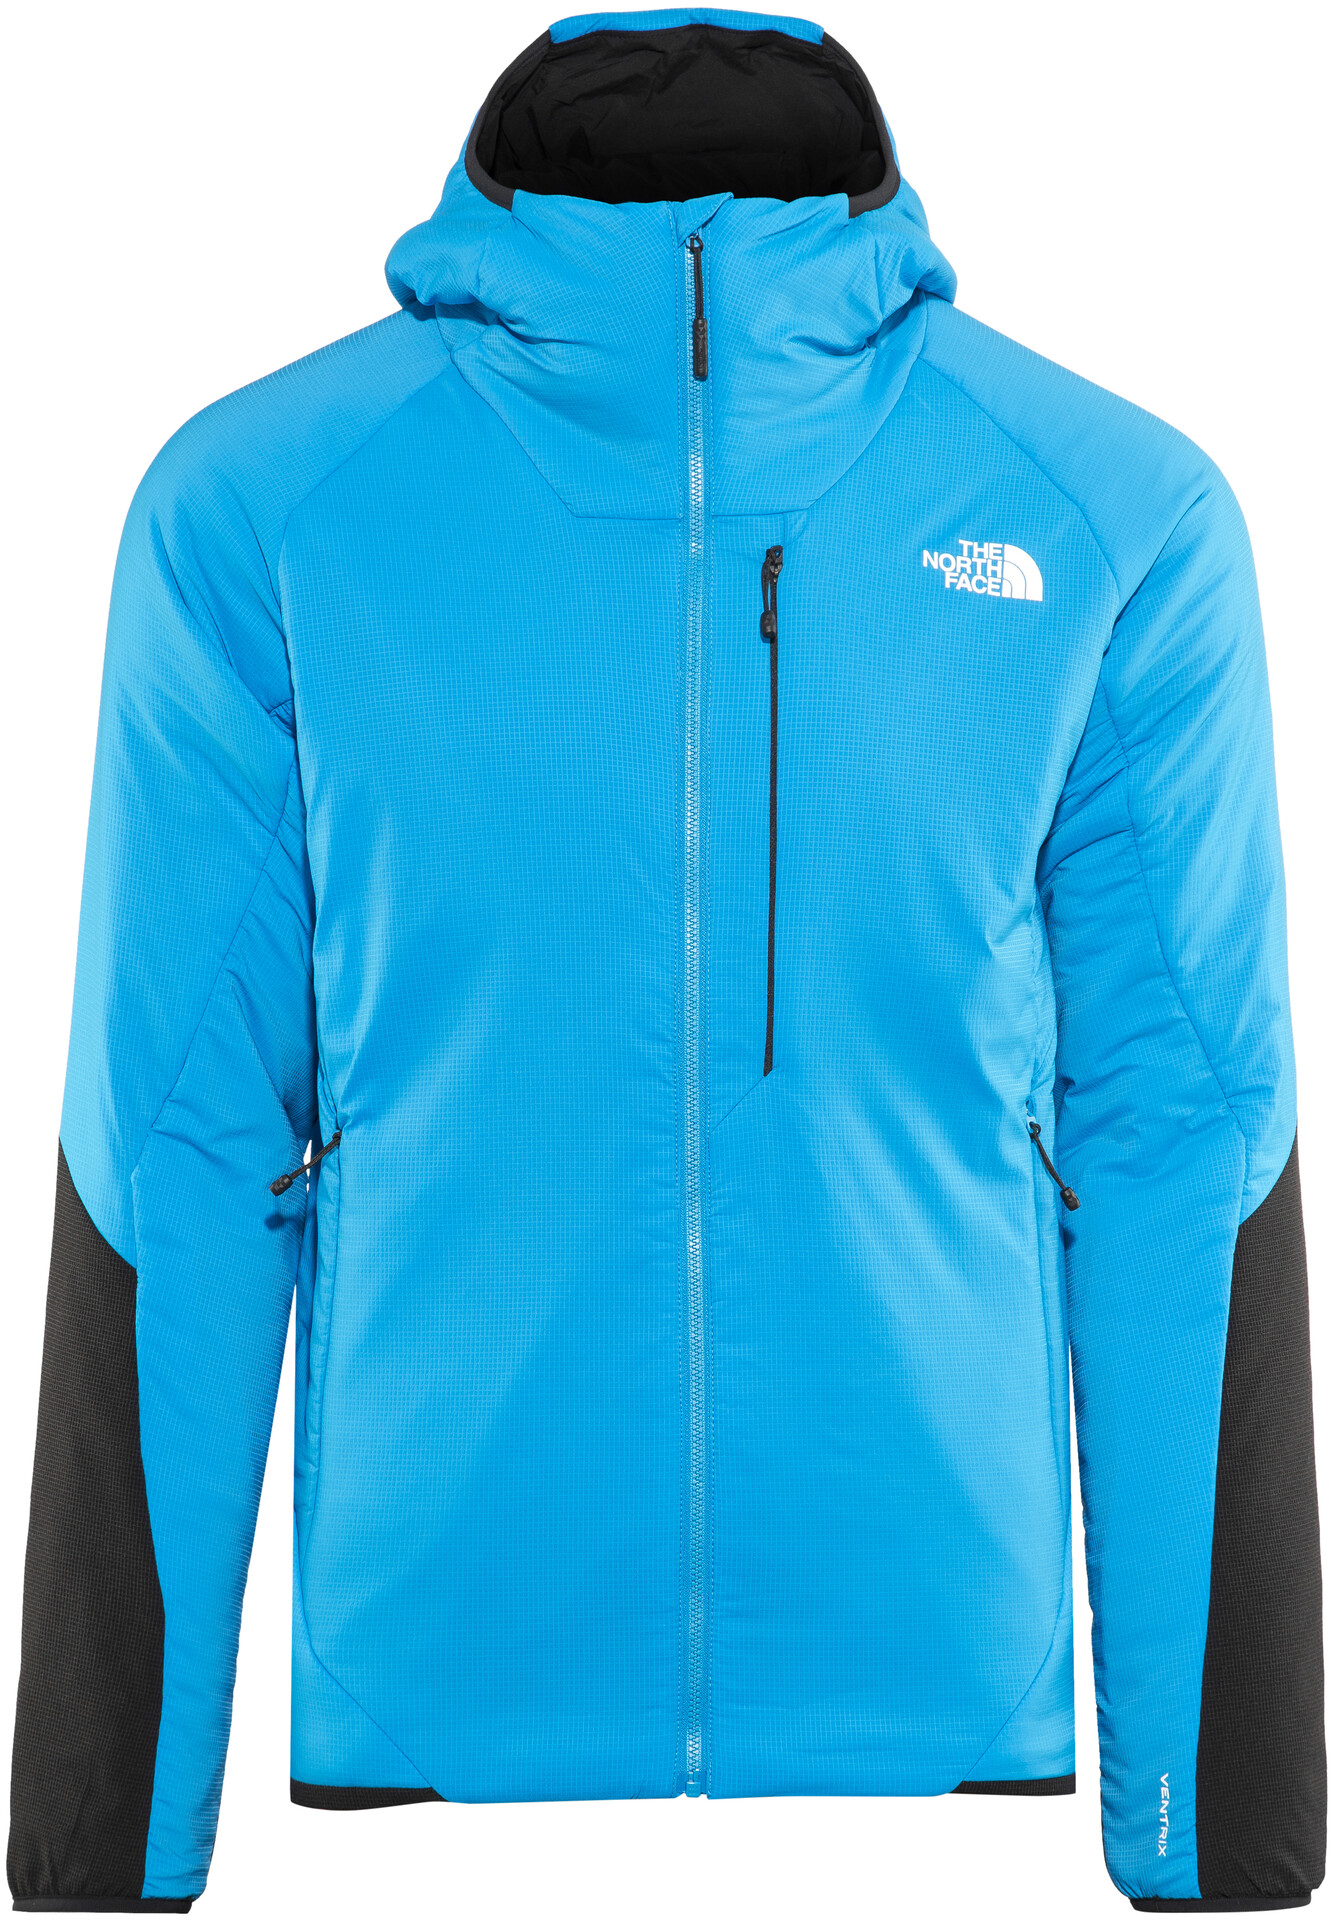 Su Addnature Blunero Giacca Ventrix The North Face Uomo pwBYq0Pq 62df826c3e5e